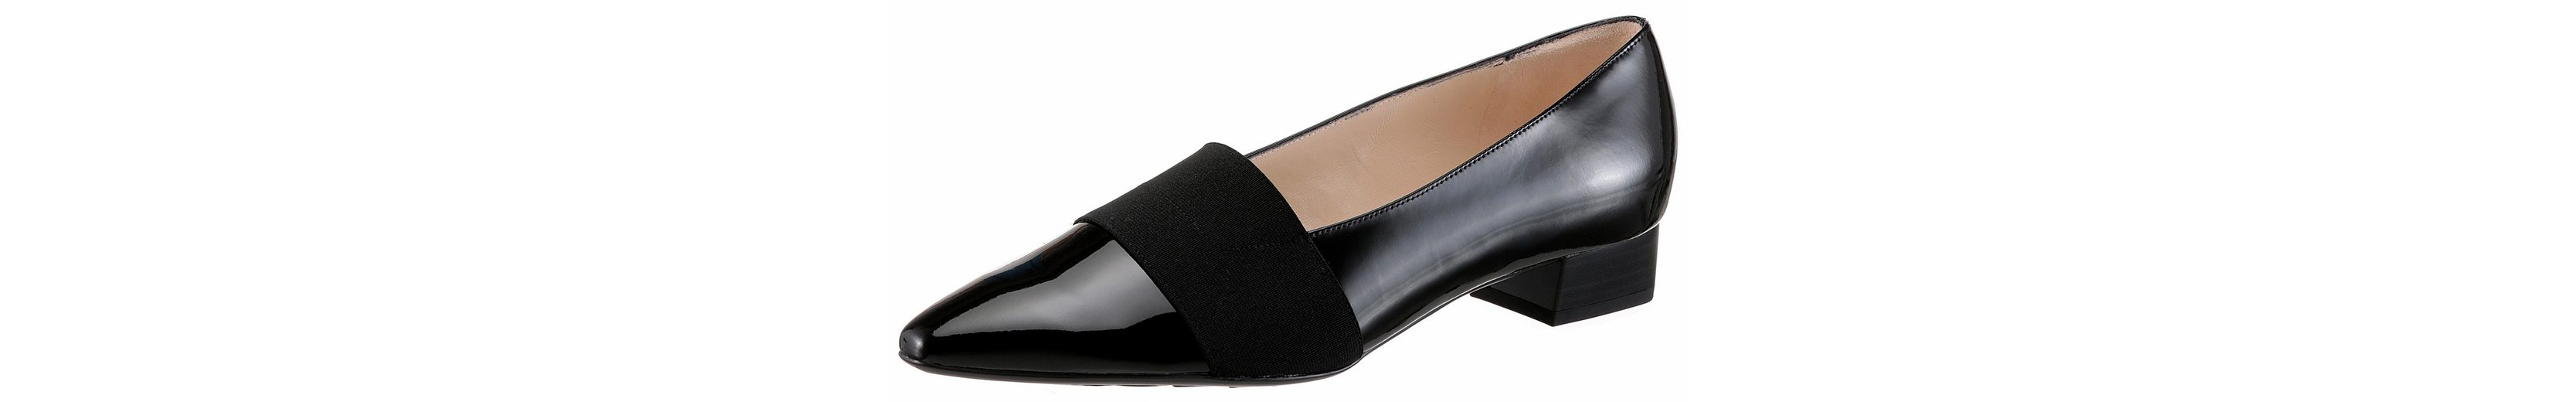 Peter Kaiser Lagos Pumps, in spitzer Form